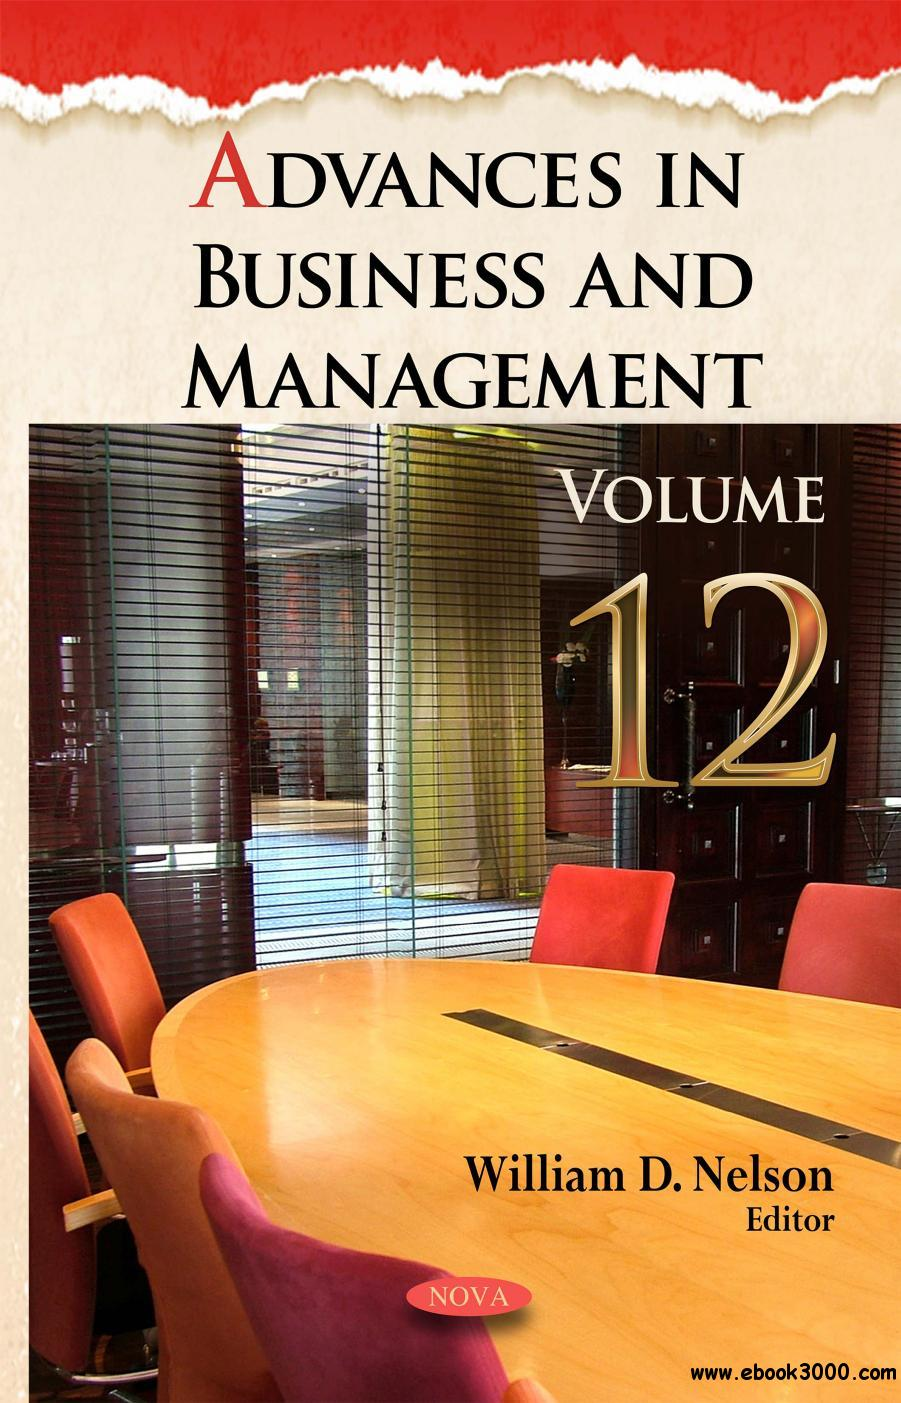 Advances in Business and Management (Advances in Business and Management Forecasting), Volume 12